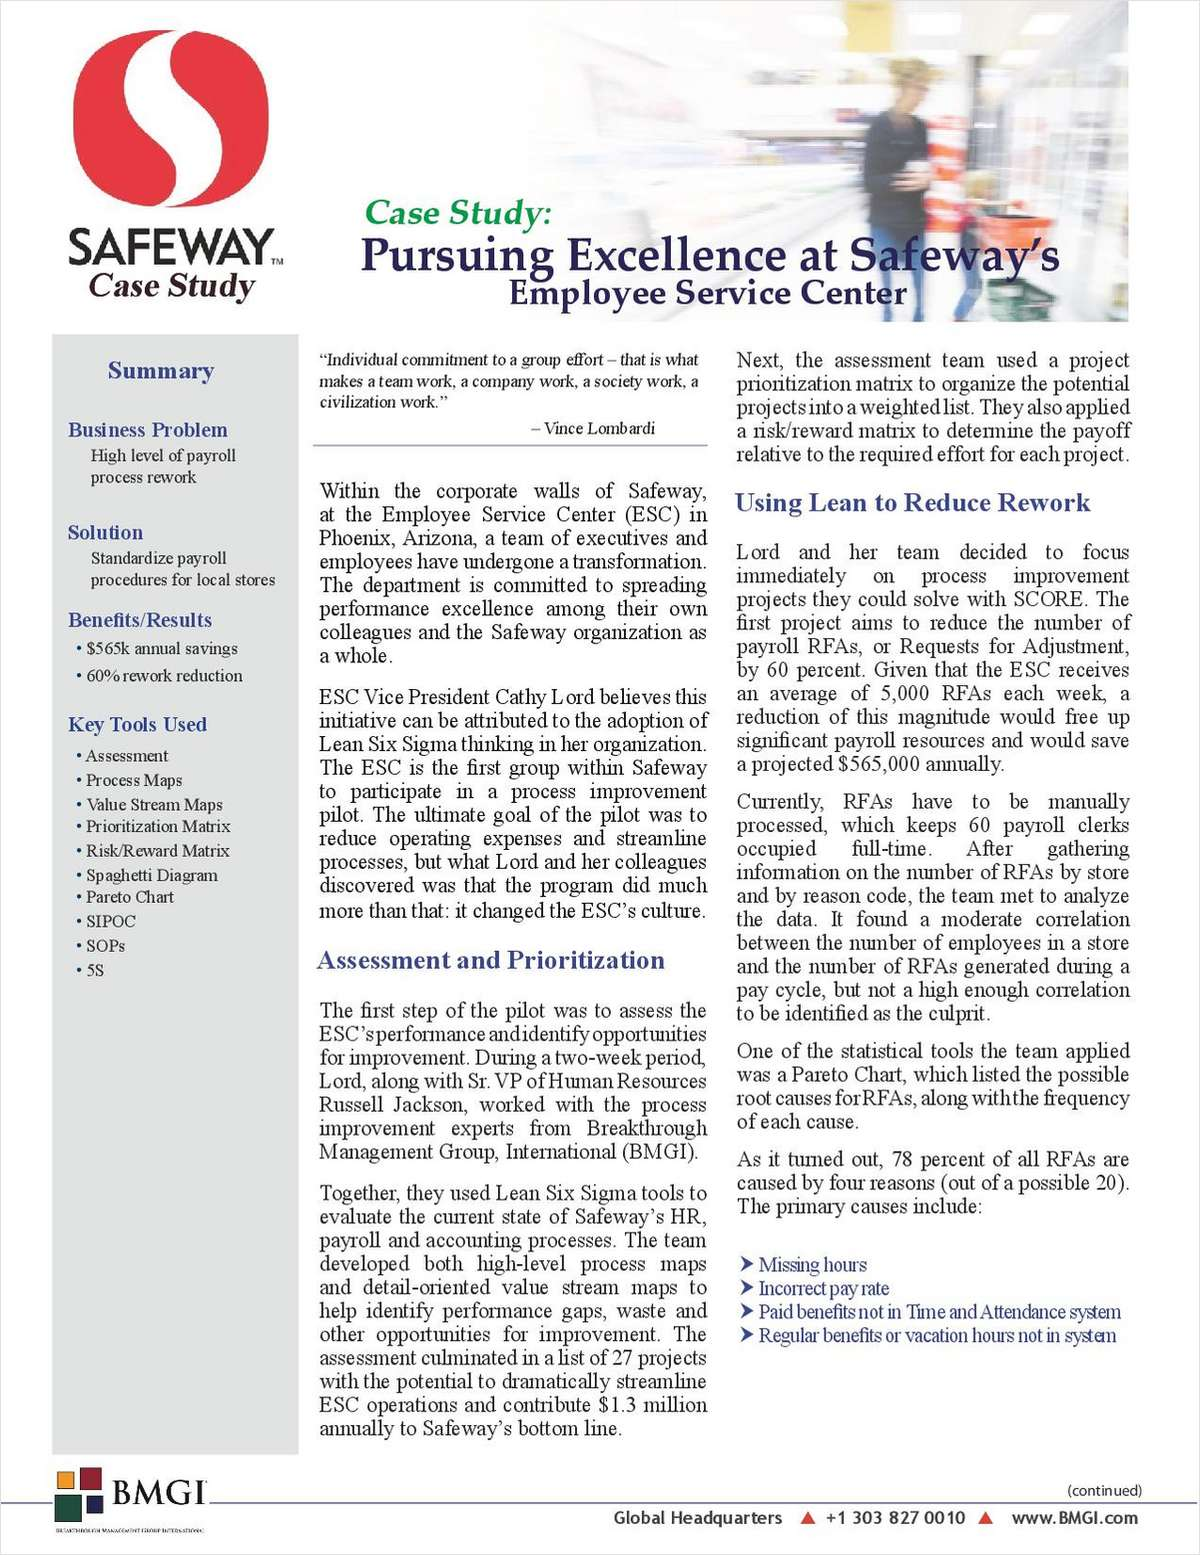 Case Study: Pursuing Excellence at Safeway's Employee Service Center